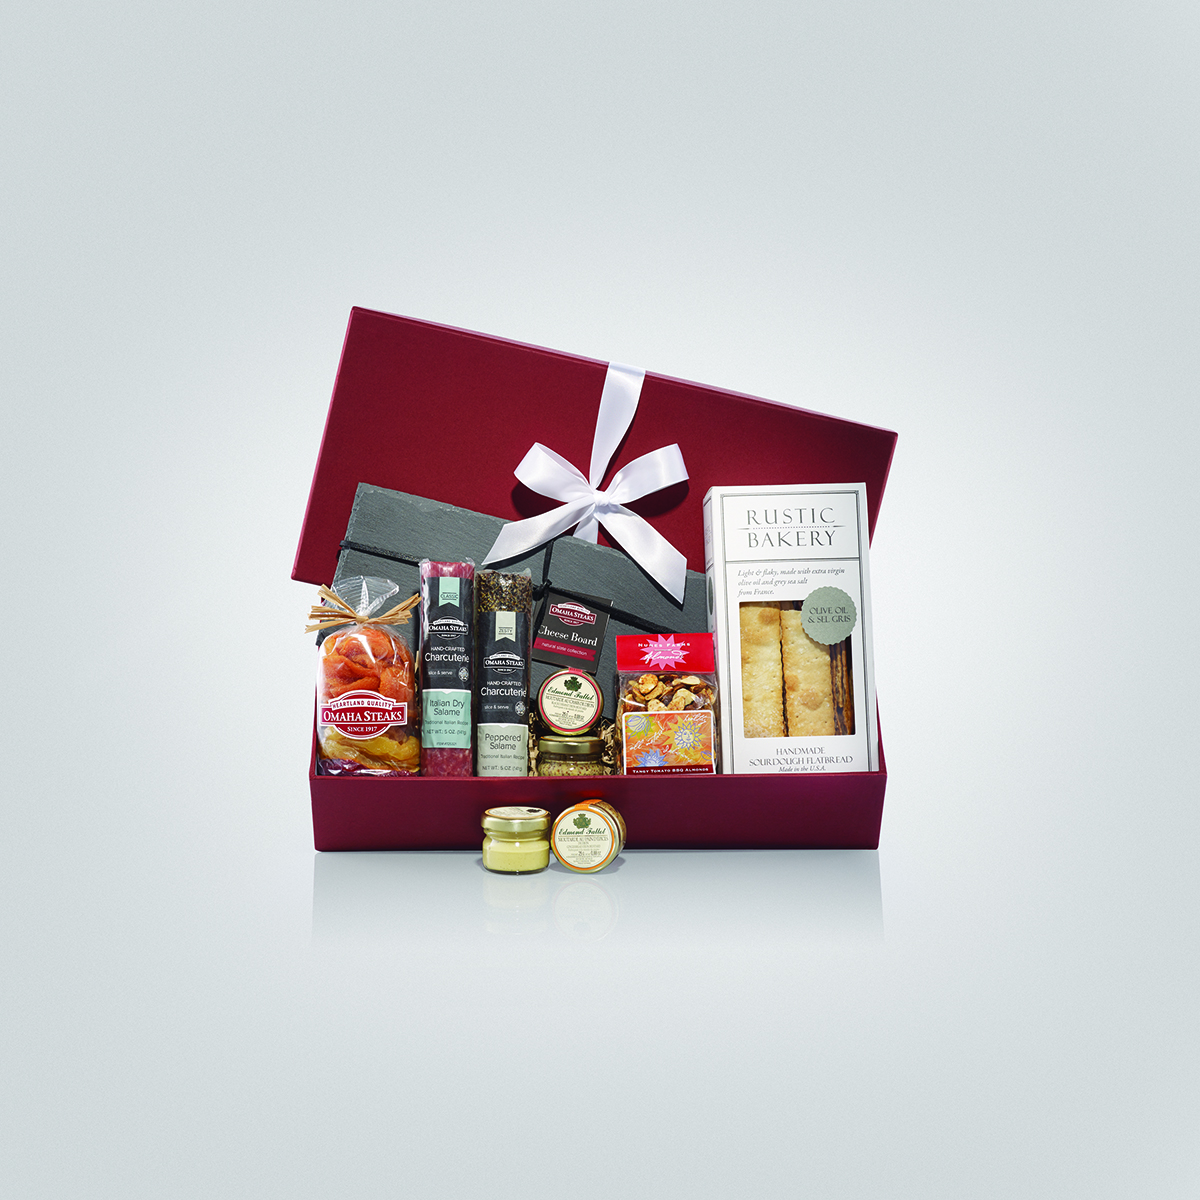 Omaha Steaks 174 Gift Boxes And Baskets Are The Perfect